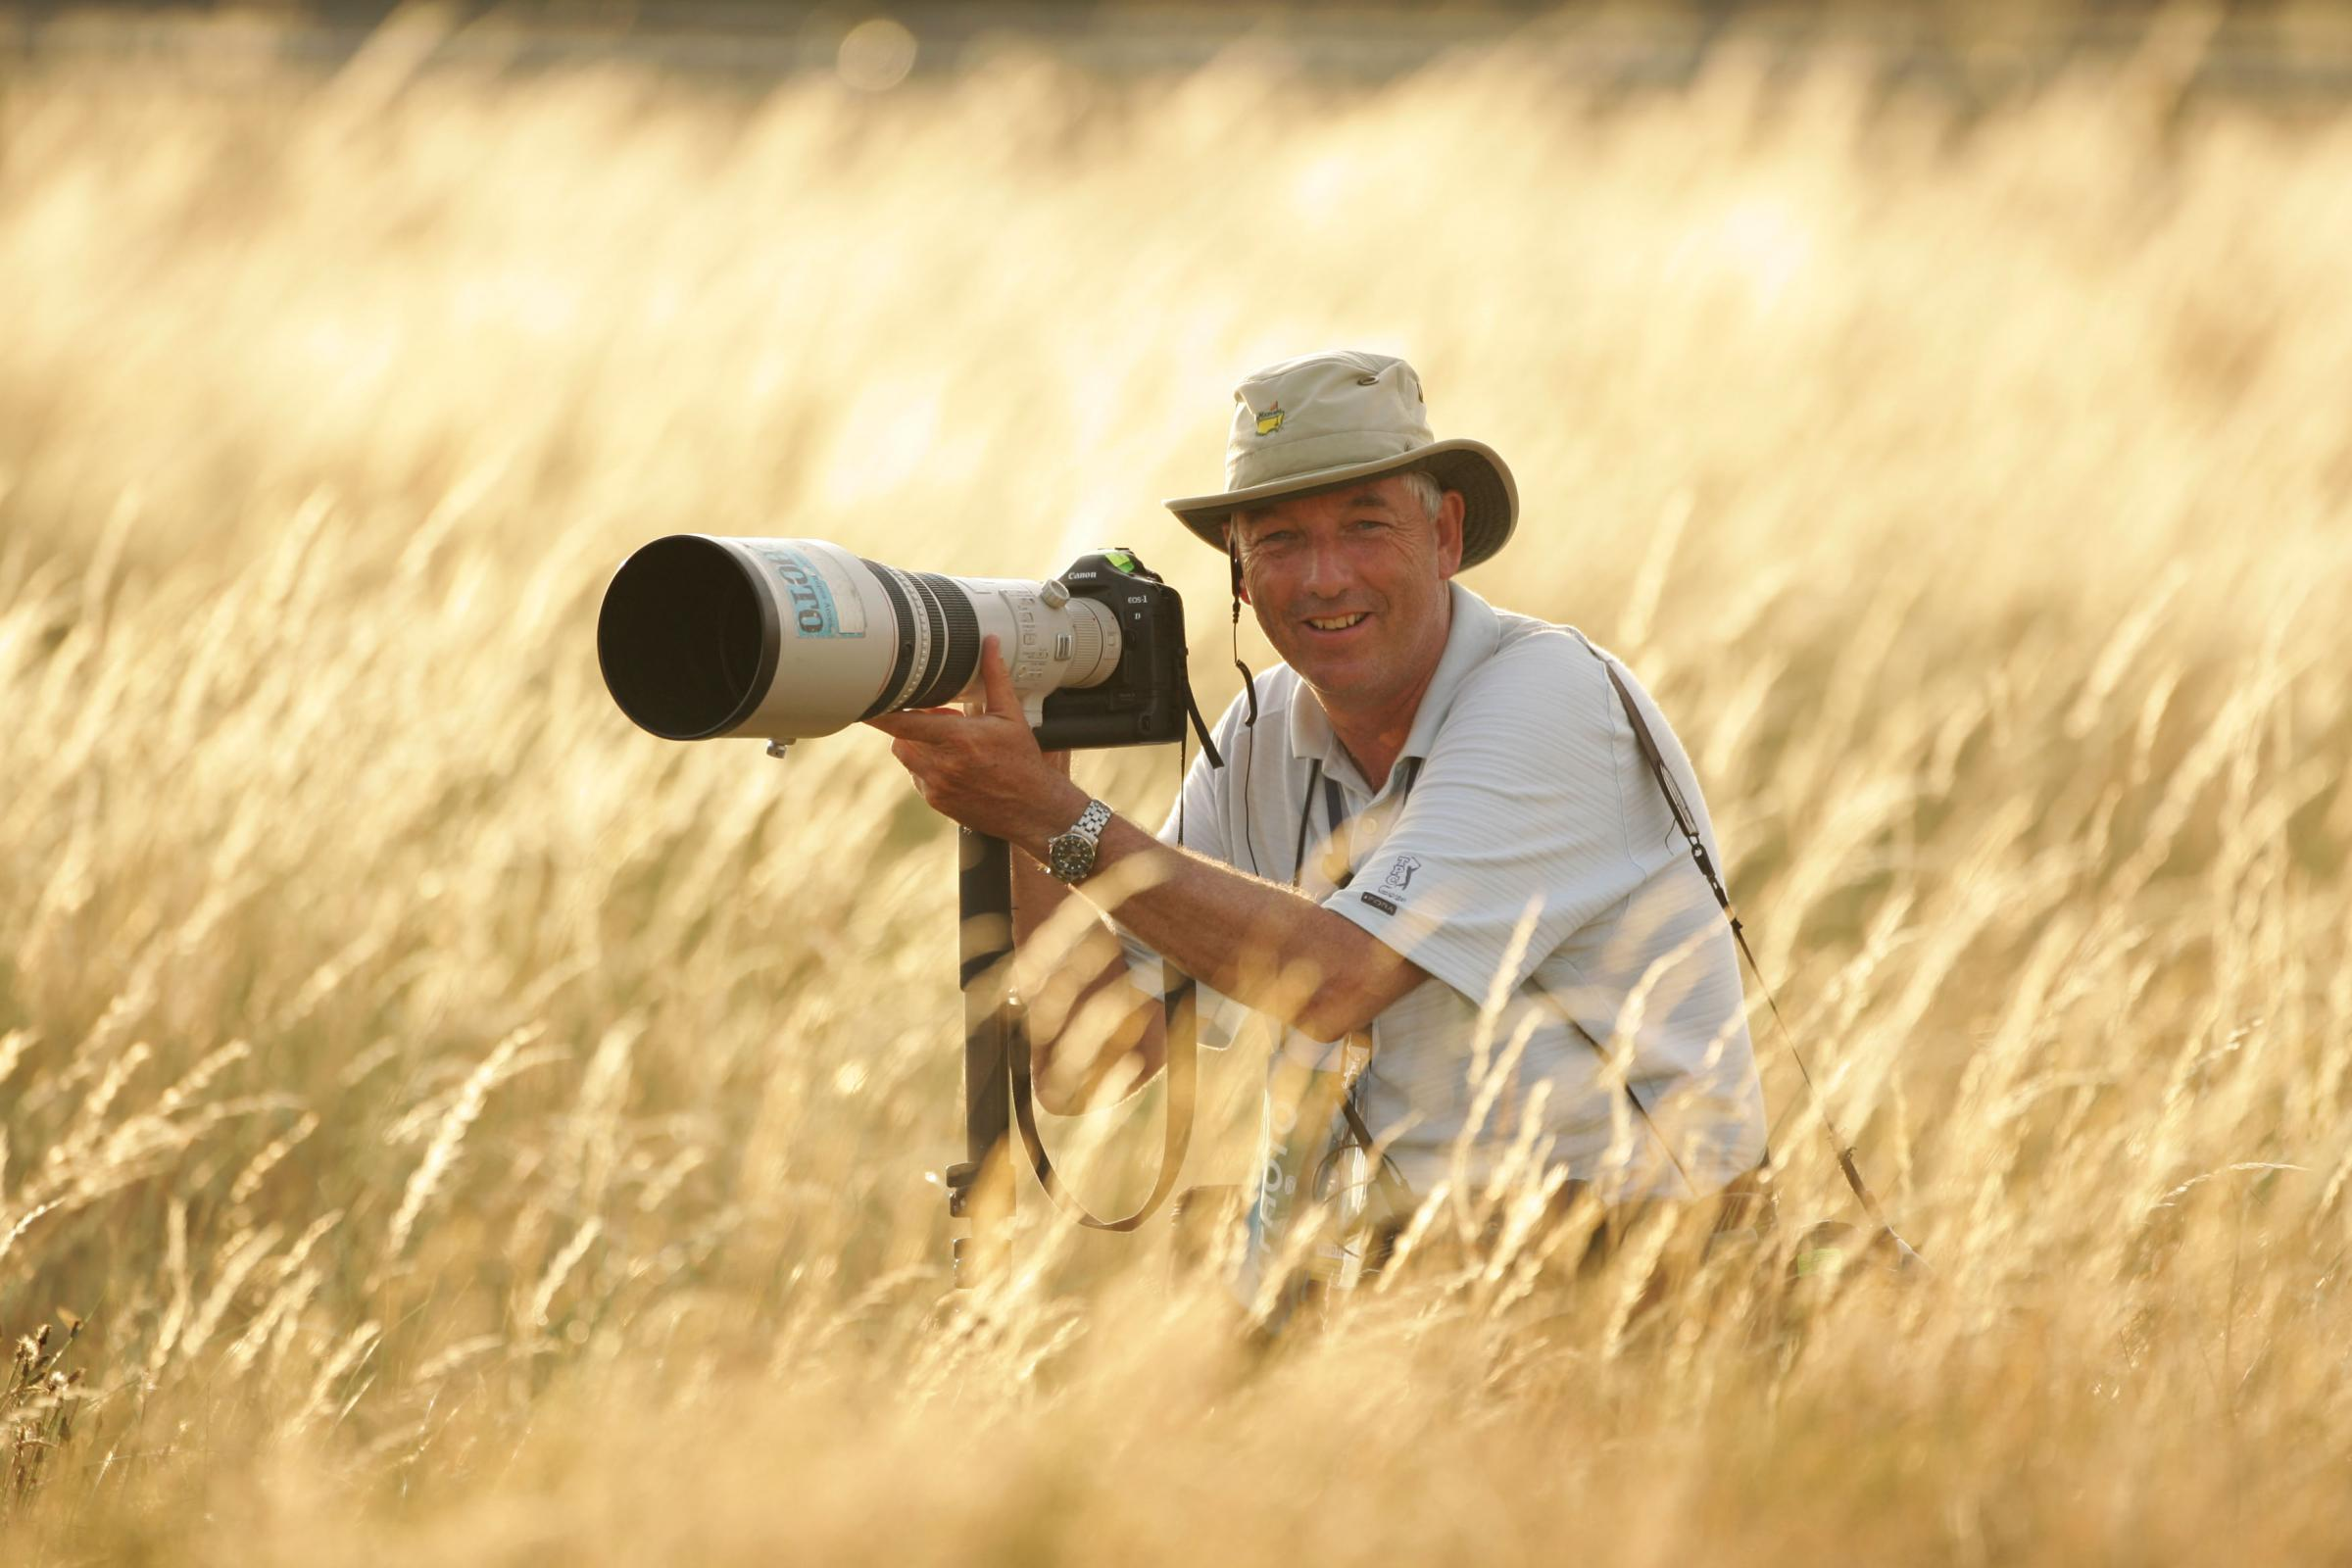 Interview: David Cannon, the world's no.1 golf photographer